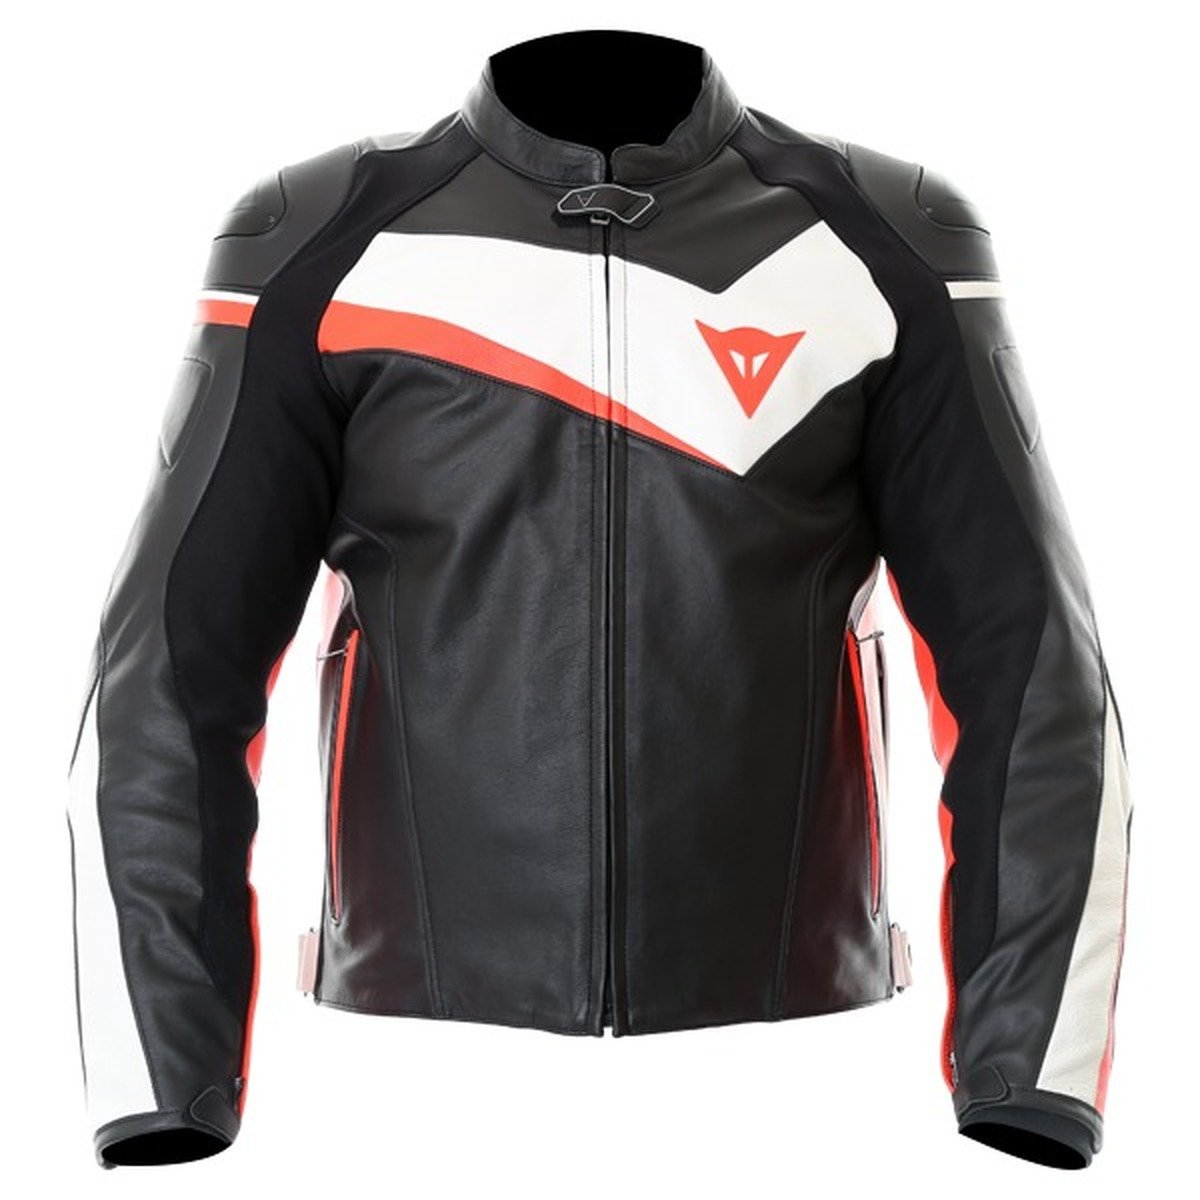 Dainese Velostar Leather Jacket Black, White and Red